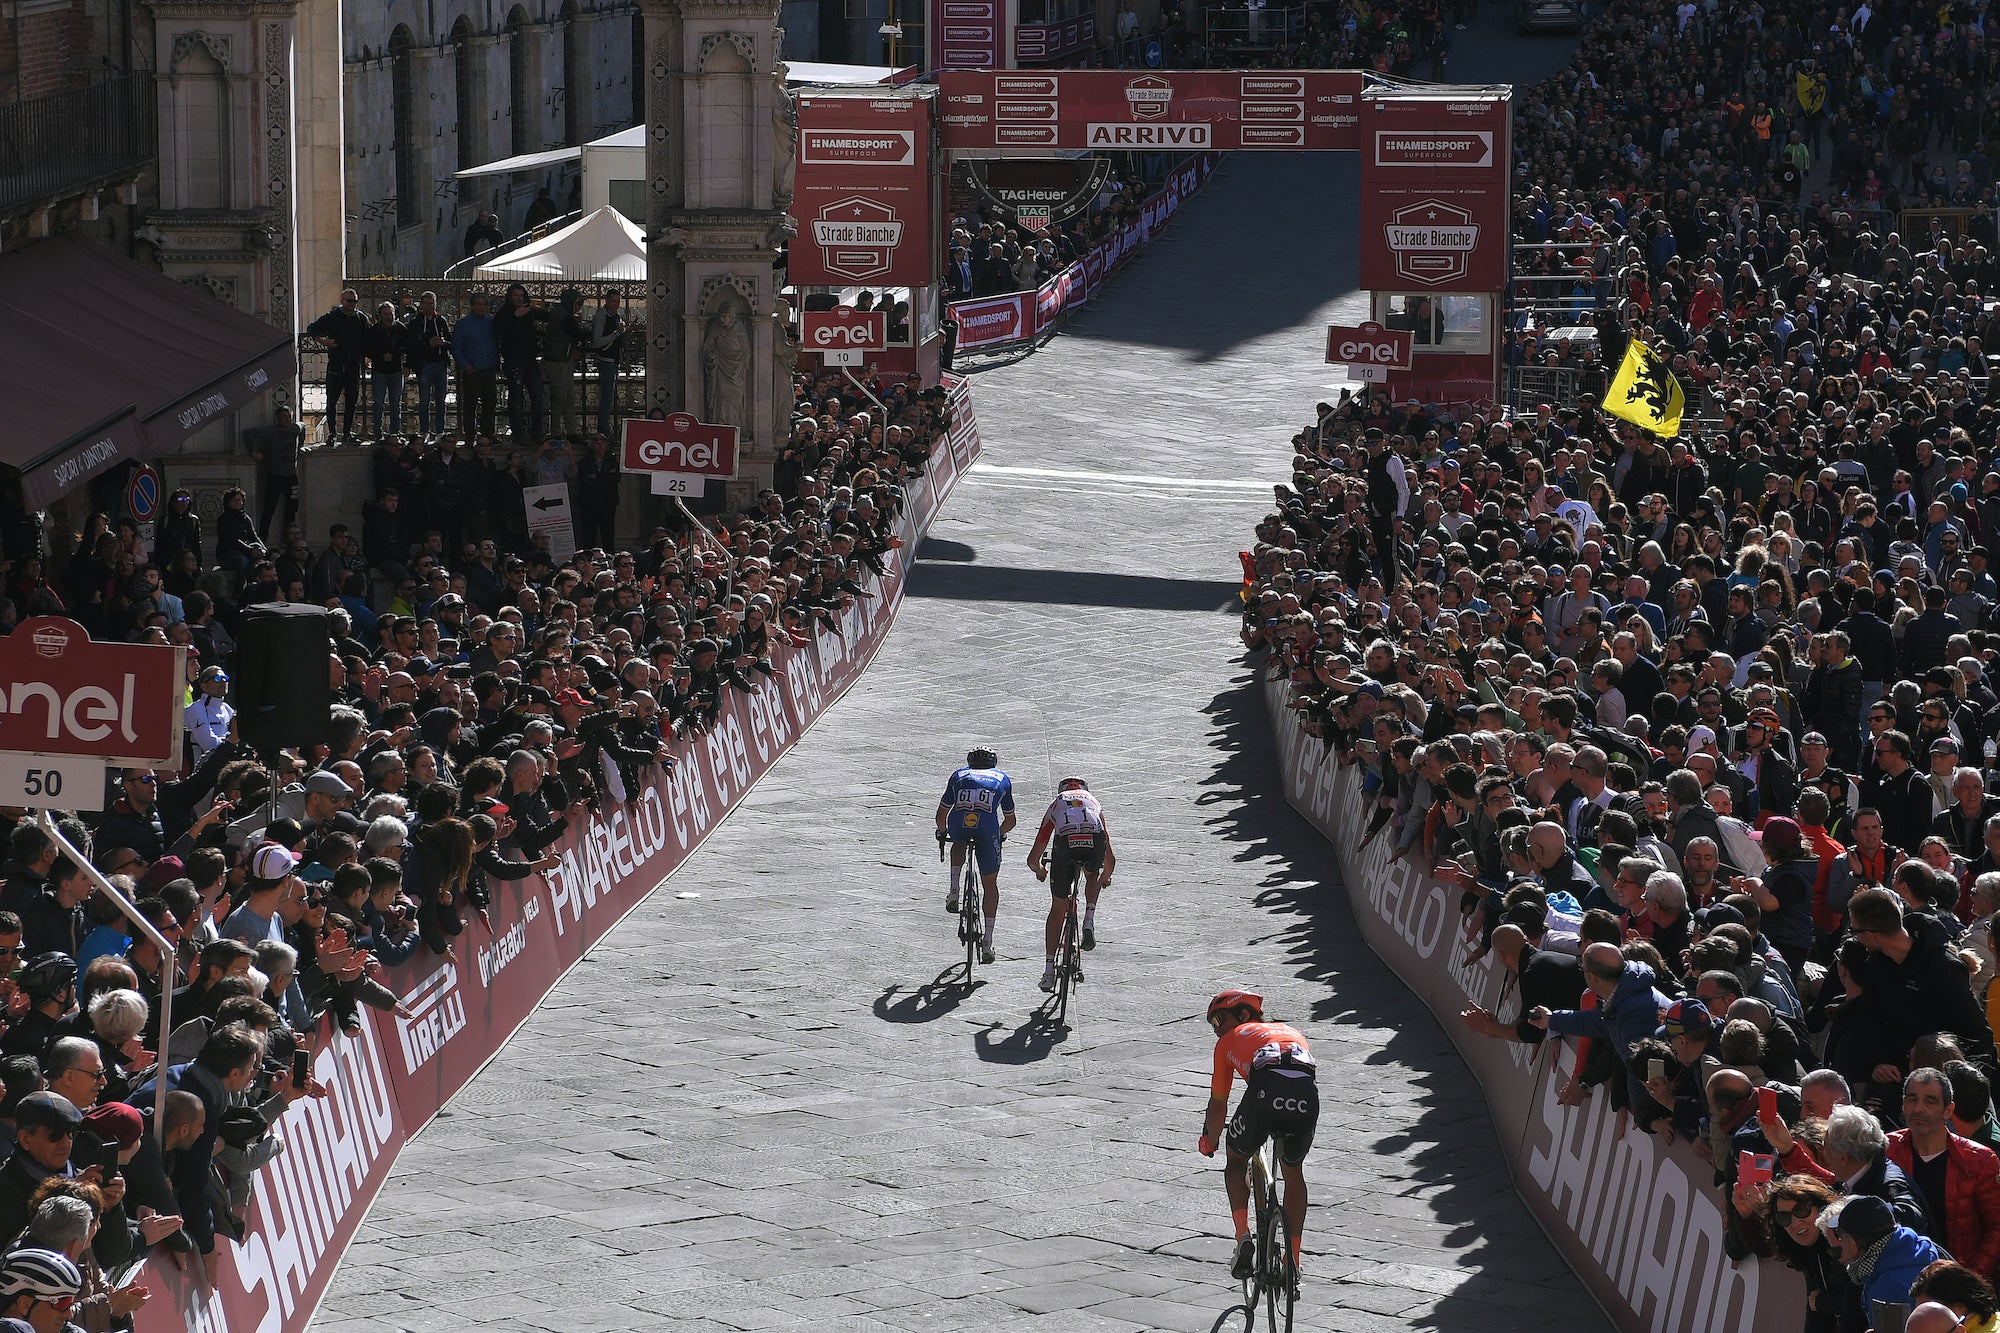 A spectacular finish in Siena's Pizza after a steep final climb into town adds yet more drama to the race. Photo: Luc Claessen/Getty Images)